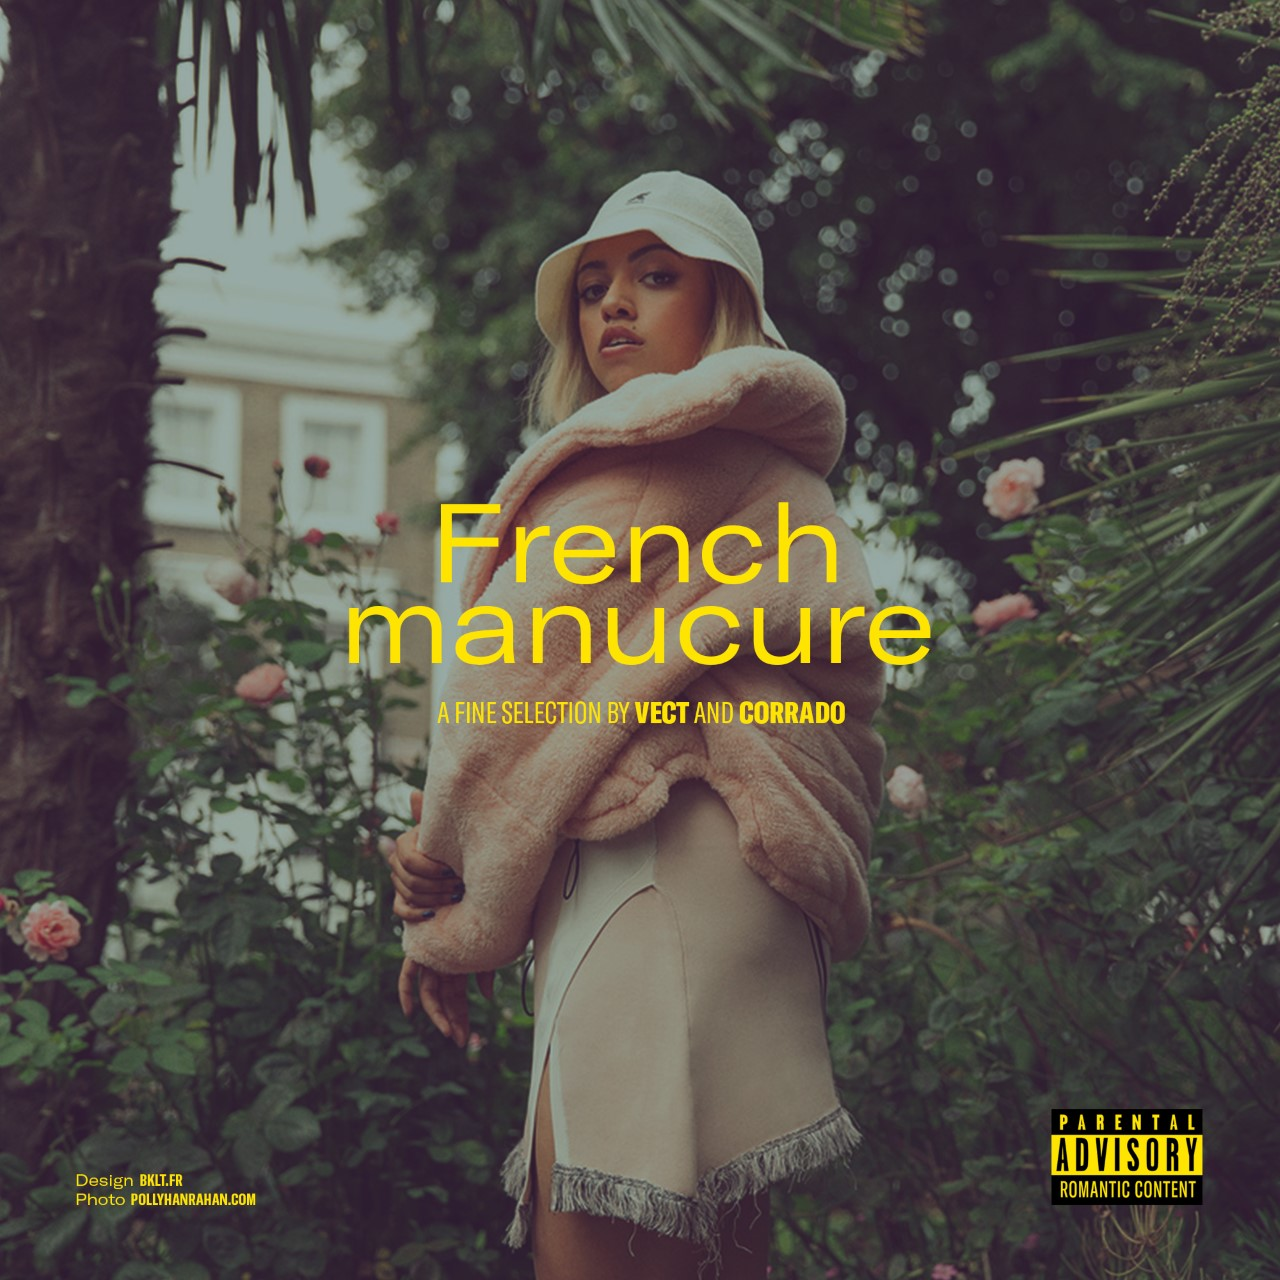 French Manucure by Vect & Corrado